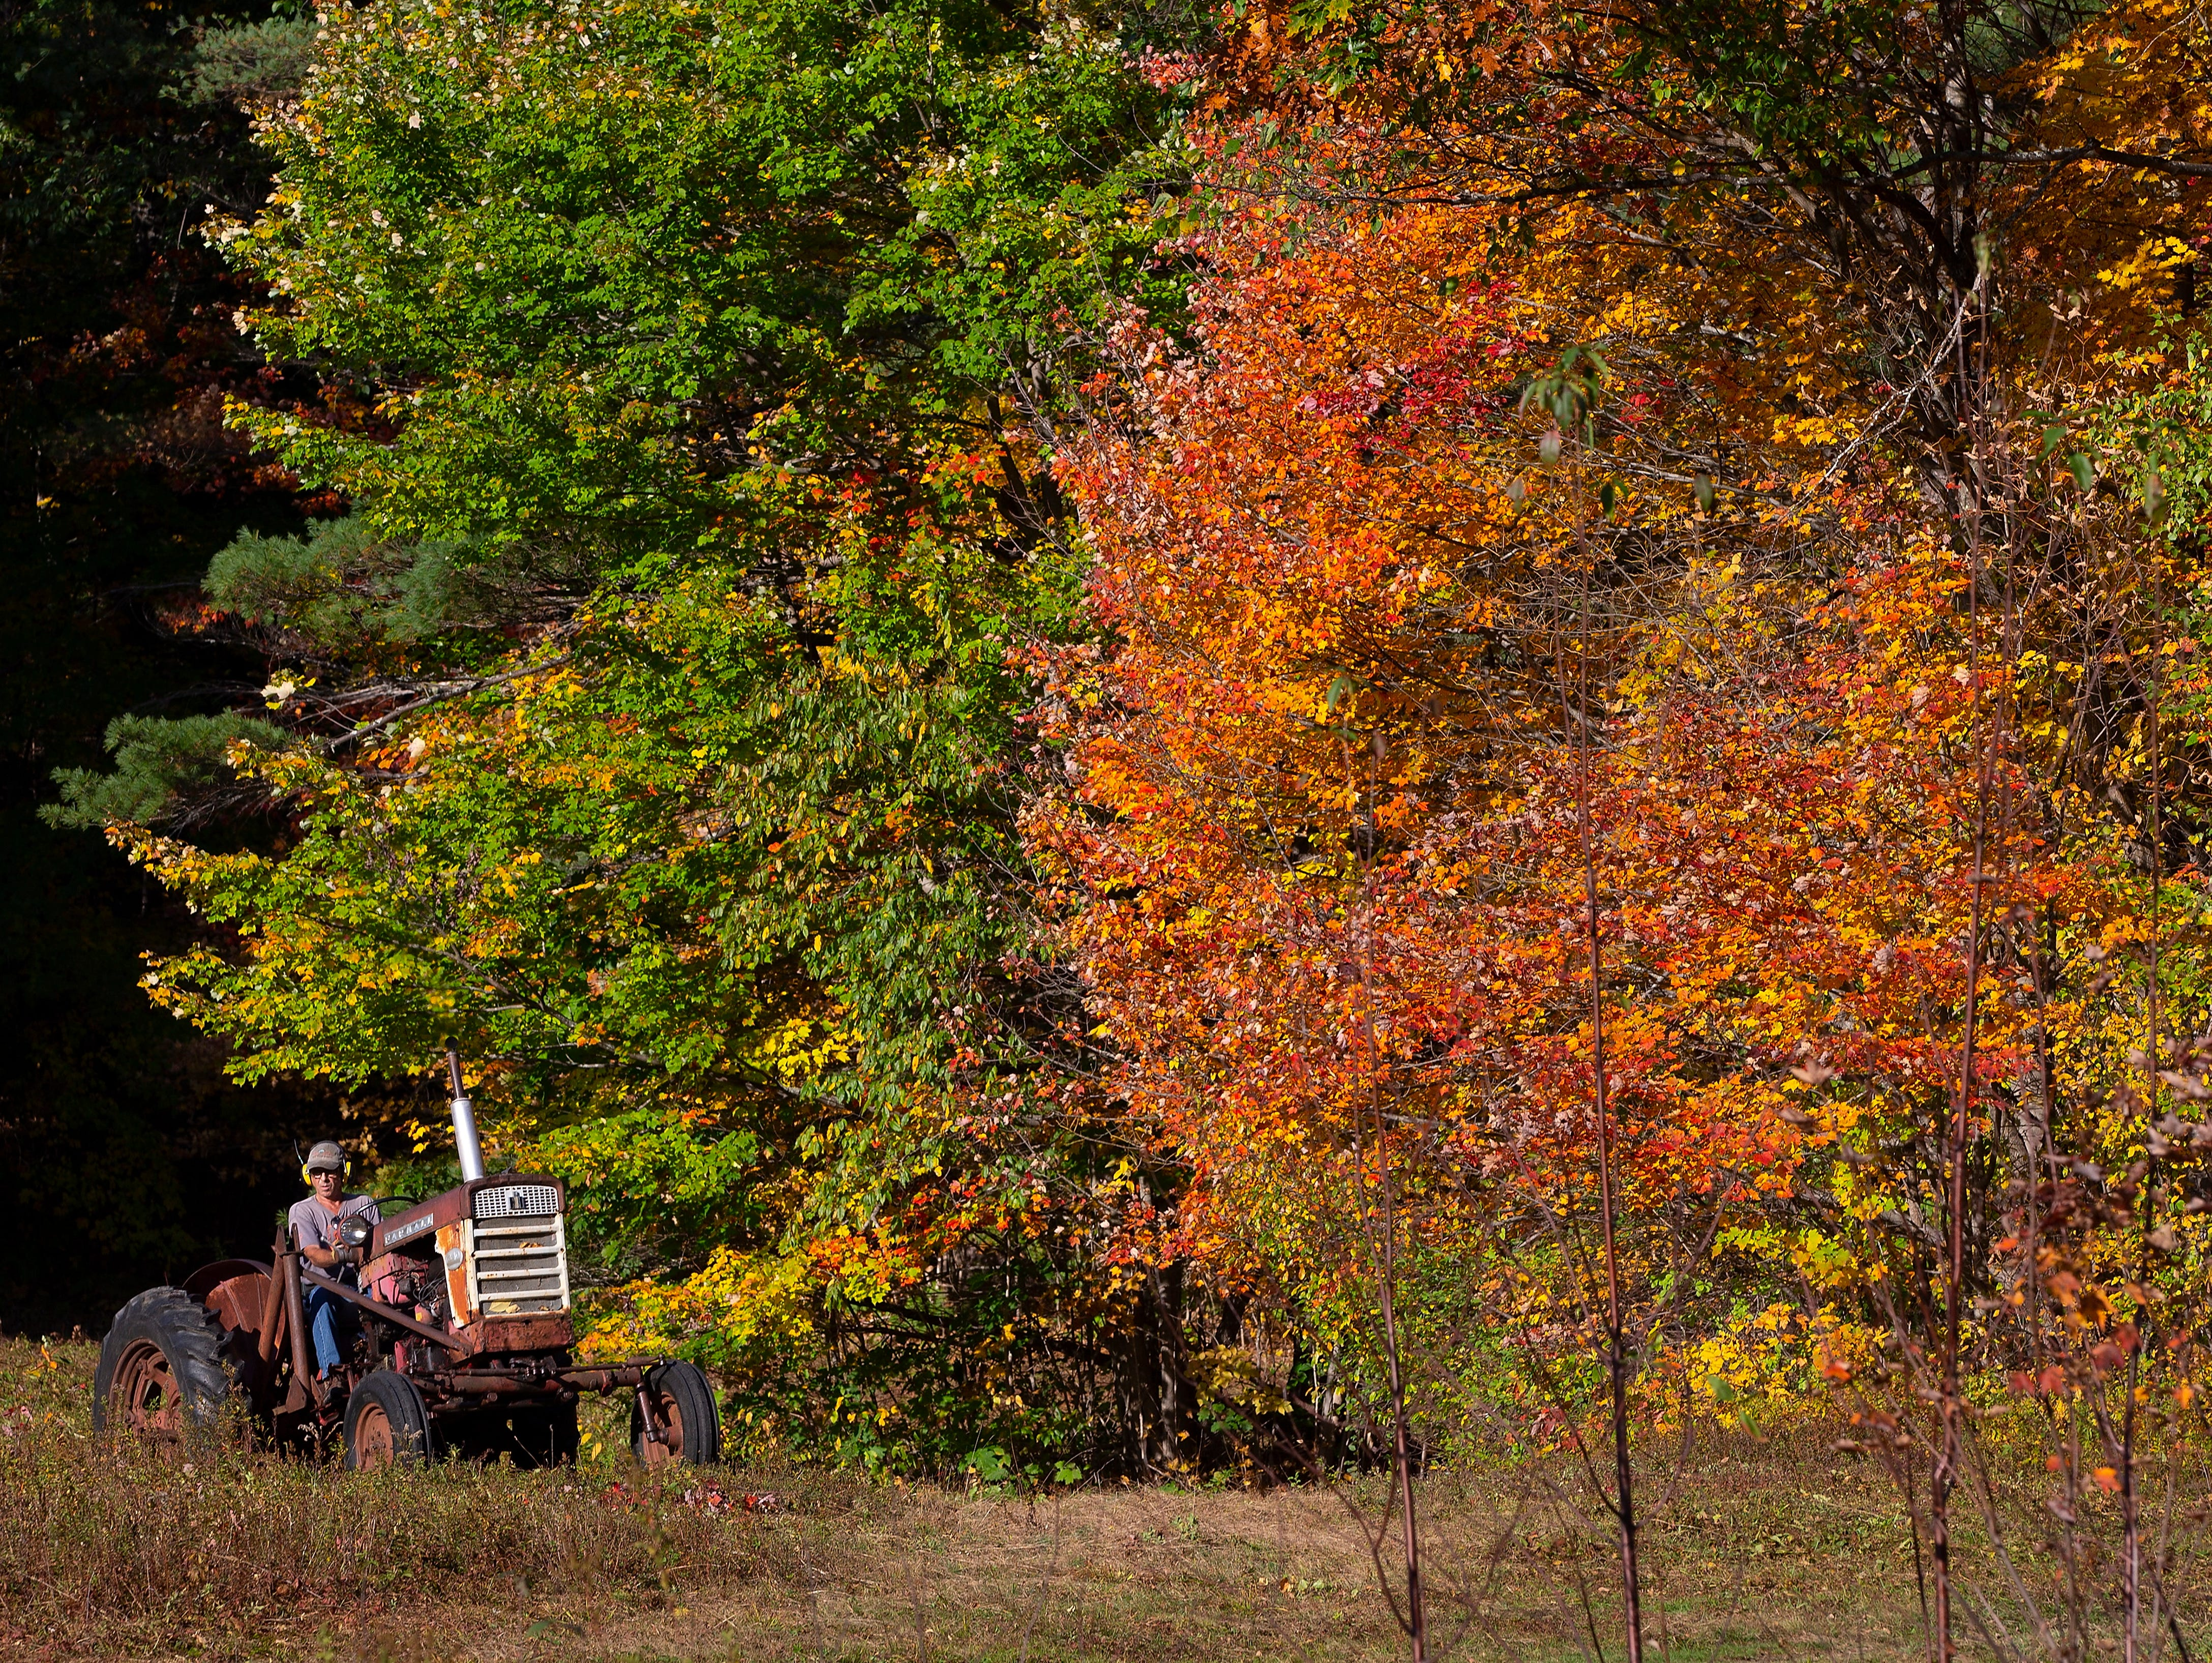 A man uses a tractor to clear a field lined with colorful trees in Bartlett,N.H. on Oct. 10, 2018.